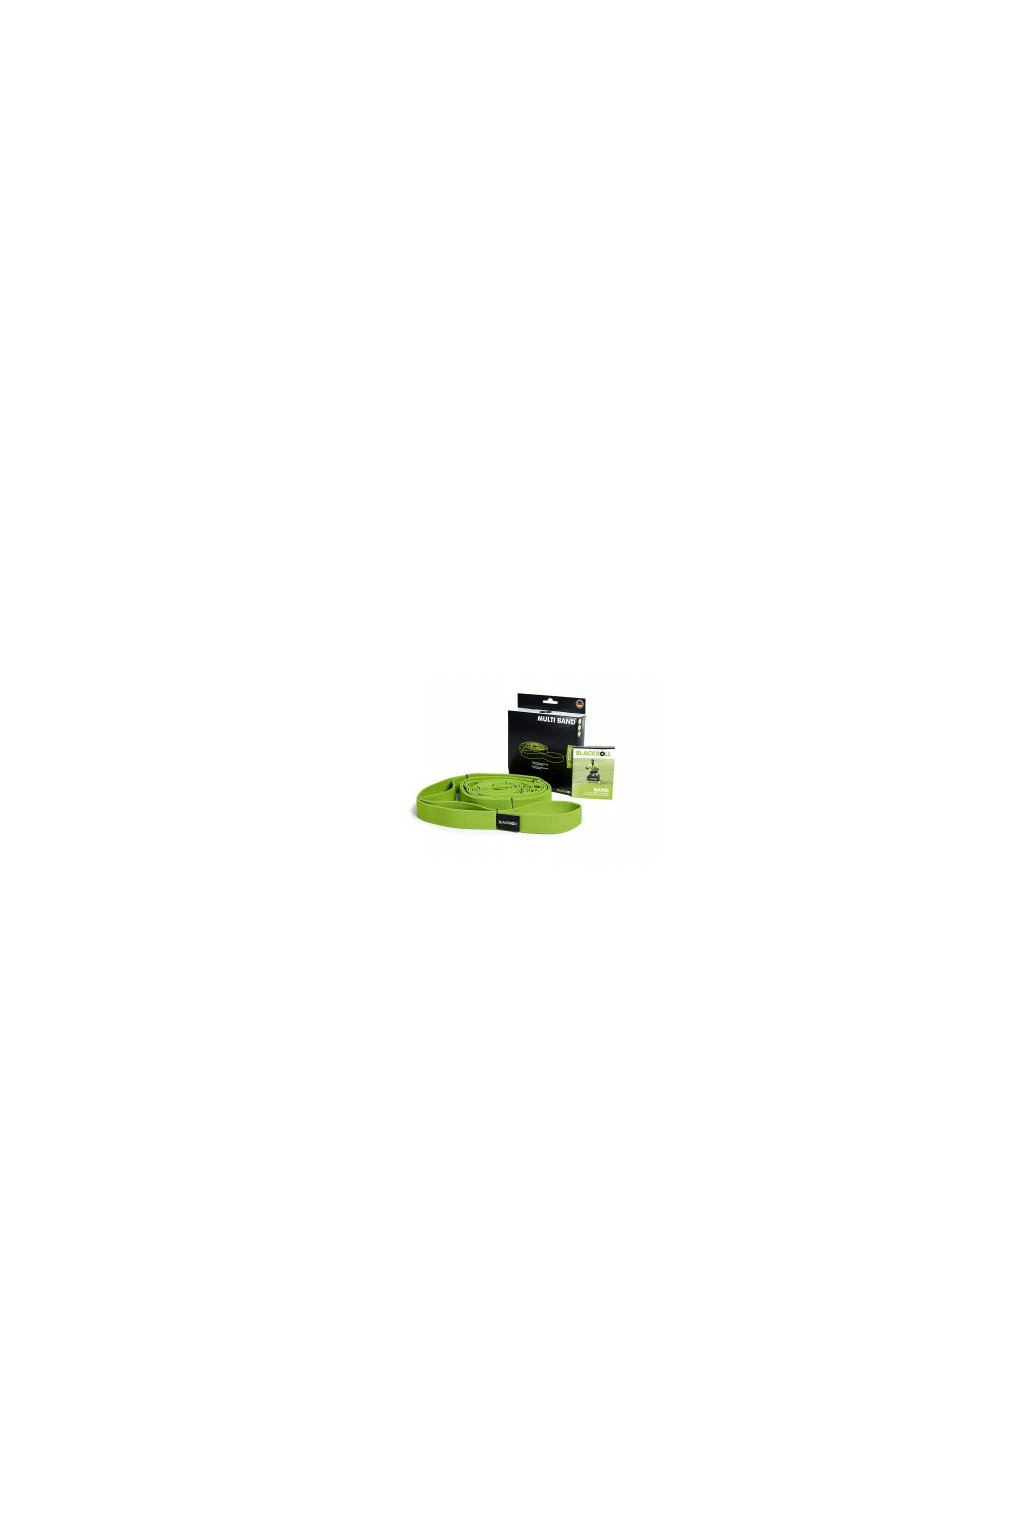 2982 1 blackroll multiband green